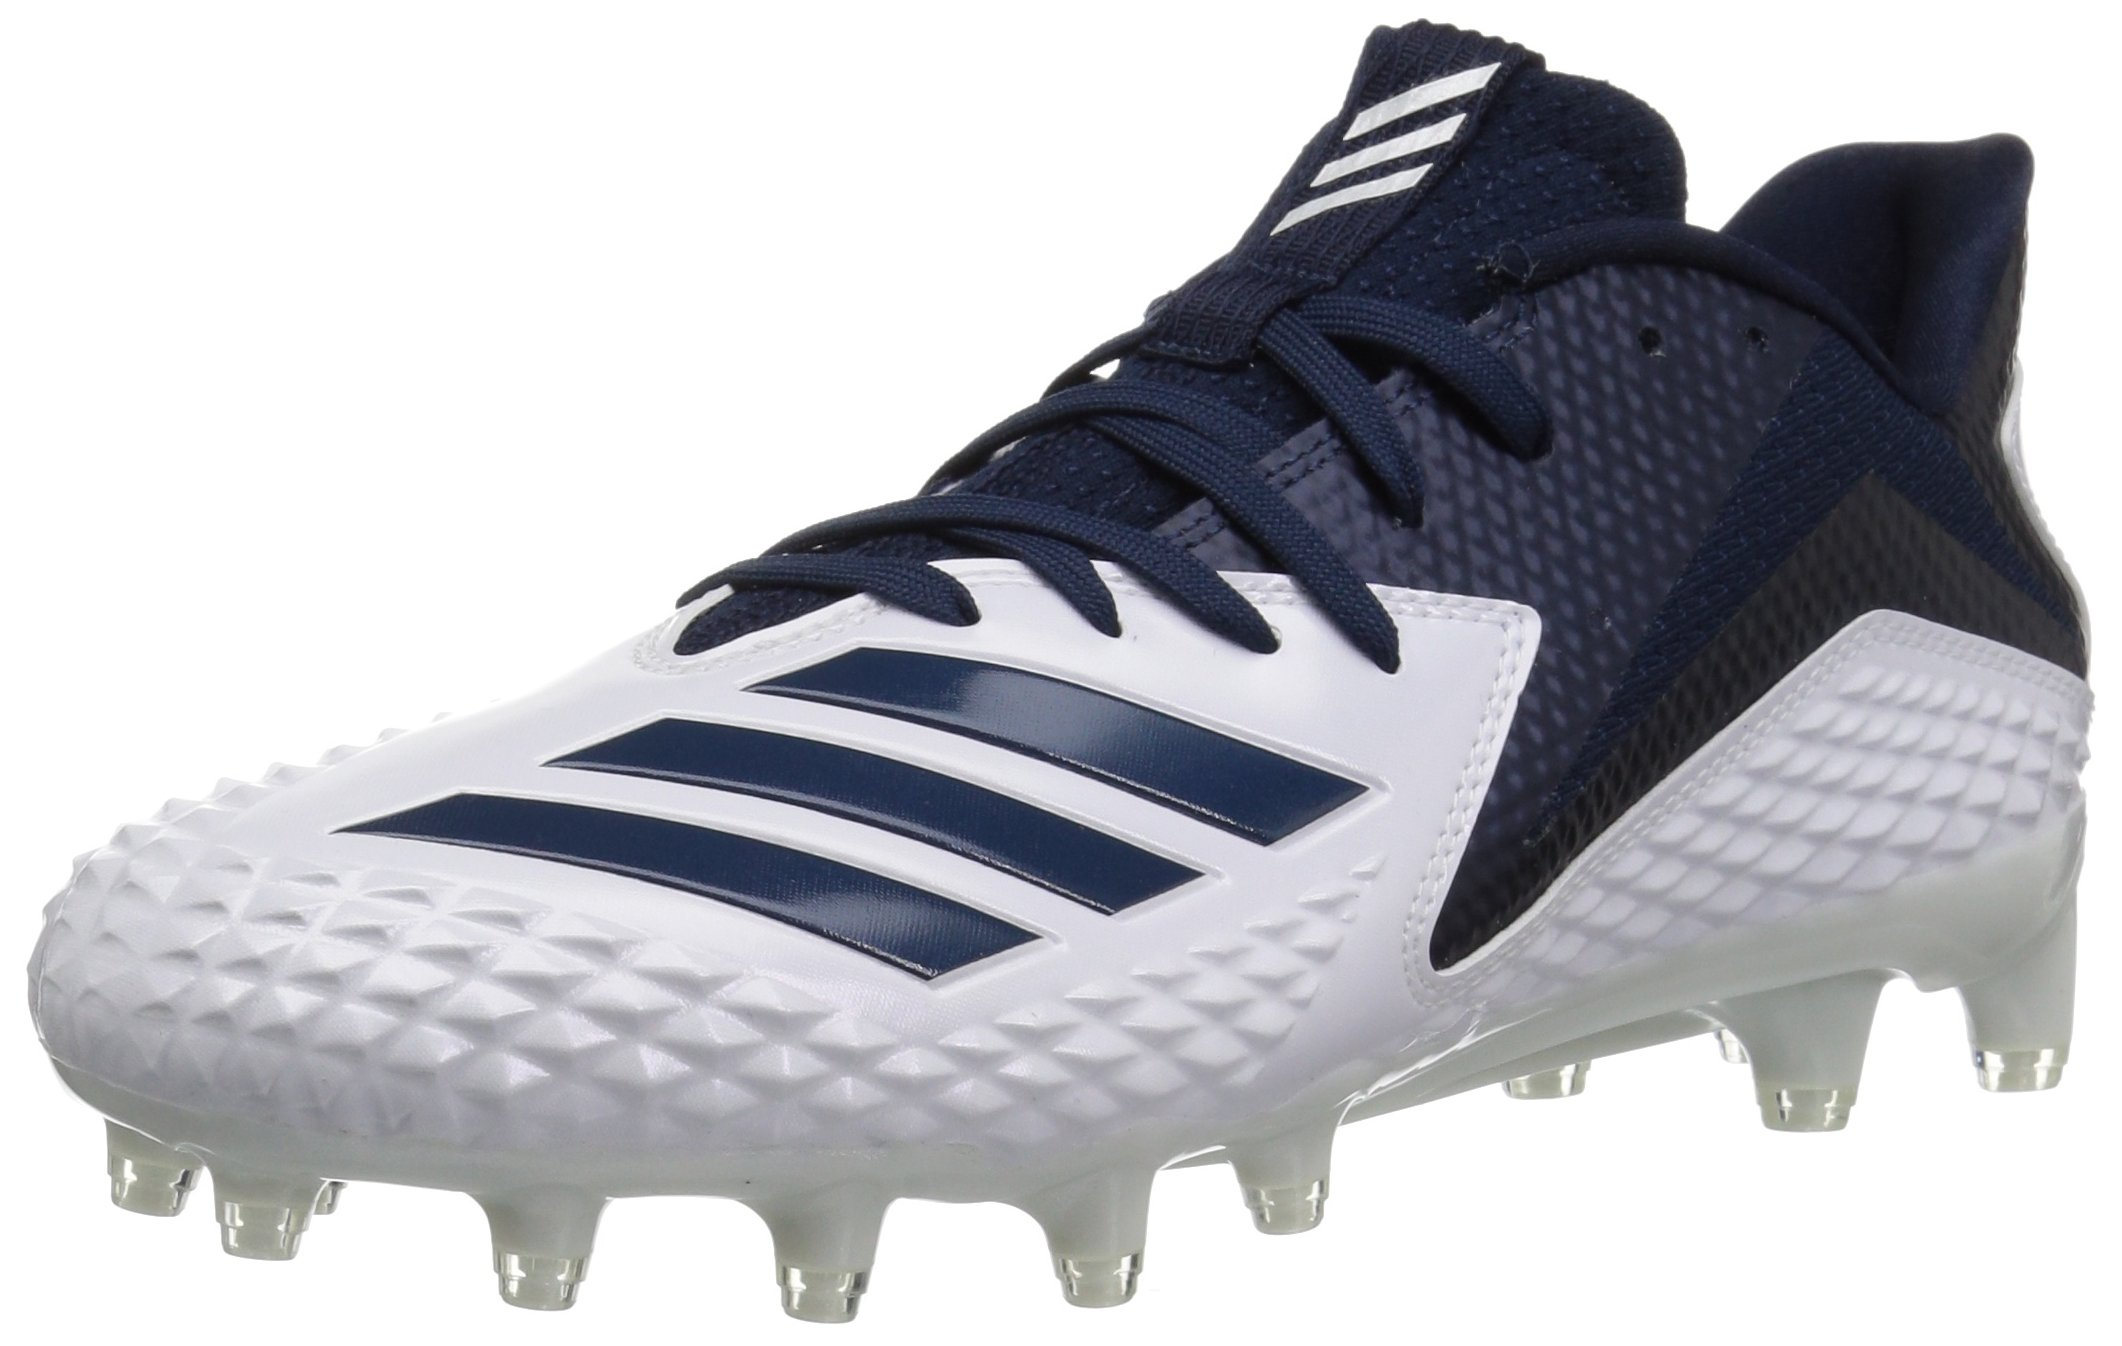 adidas Men's Freak X Carbon Mid Football Shoe, White/Collegiate Navy/Collegiate Navy, 10 M US by adidas